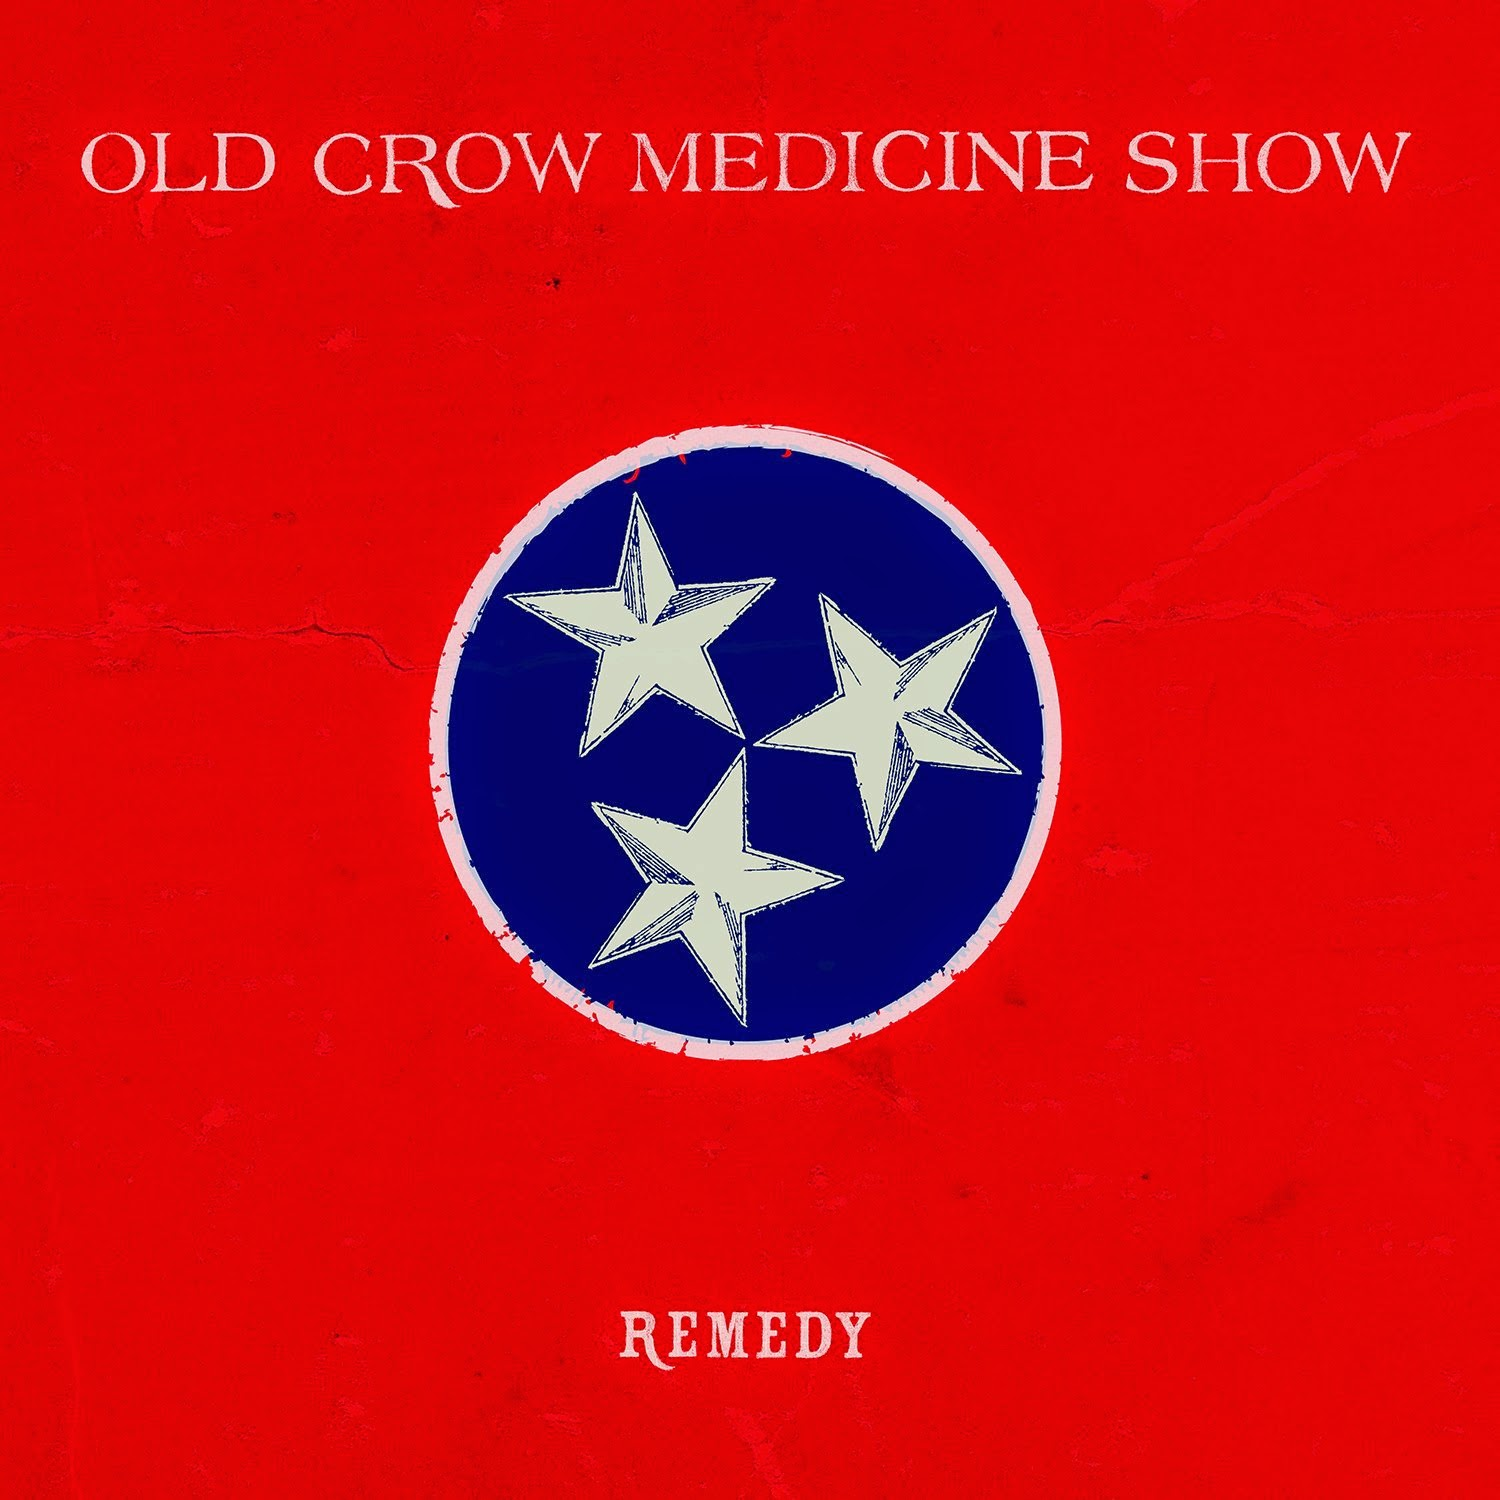 http://www.amazon.com/Remedy-Old-Crow-Medicine-Show/dp/B00JU3S5KA/ref=sr_1_1?ie=UTF8&qid=1412392426&sr=8-1&keywords=remedy+old+crow+medicine+show